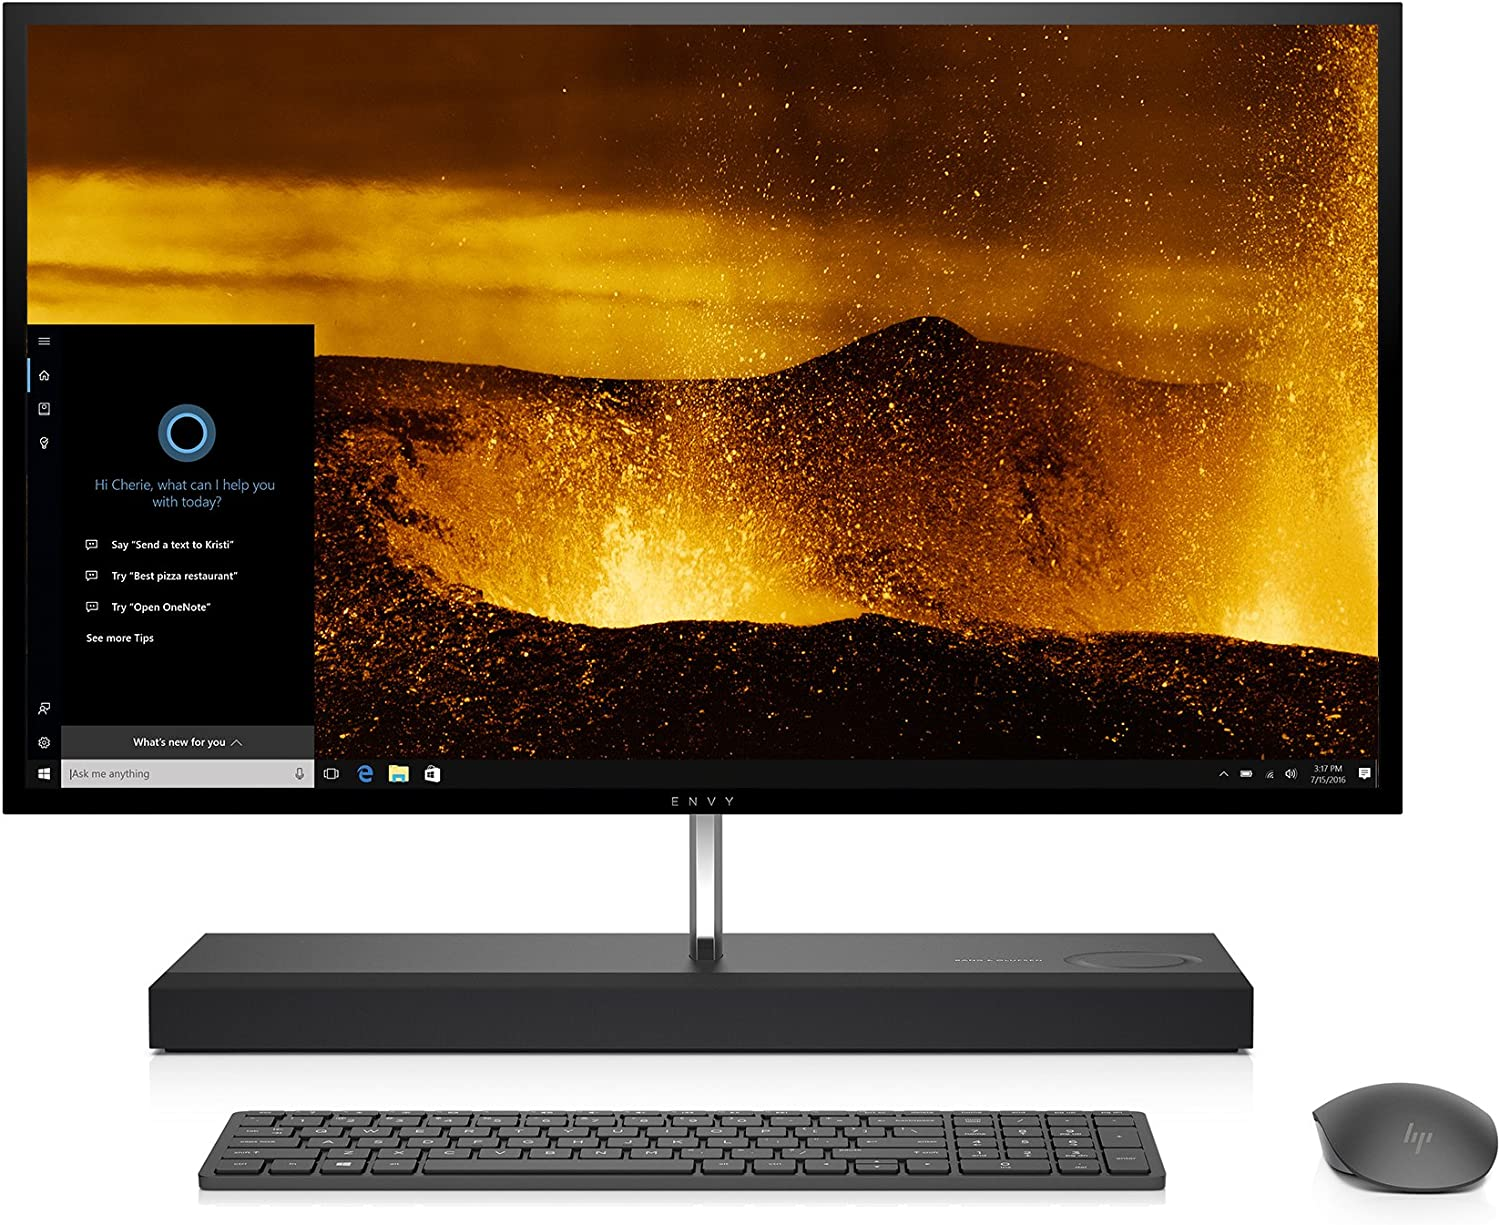 70% OFF Outlet HP Product 27-b010 Envy All-in-One Intel Core RAM H i7-6700T 1TB 16GB